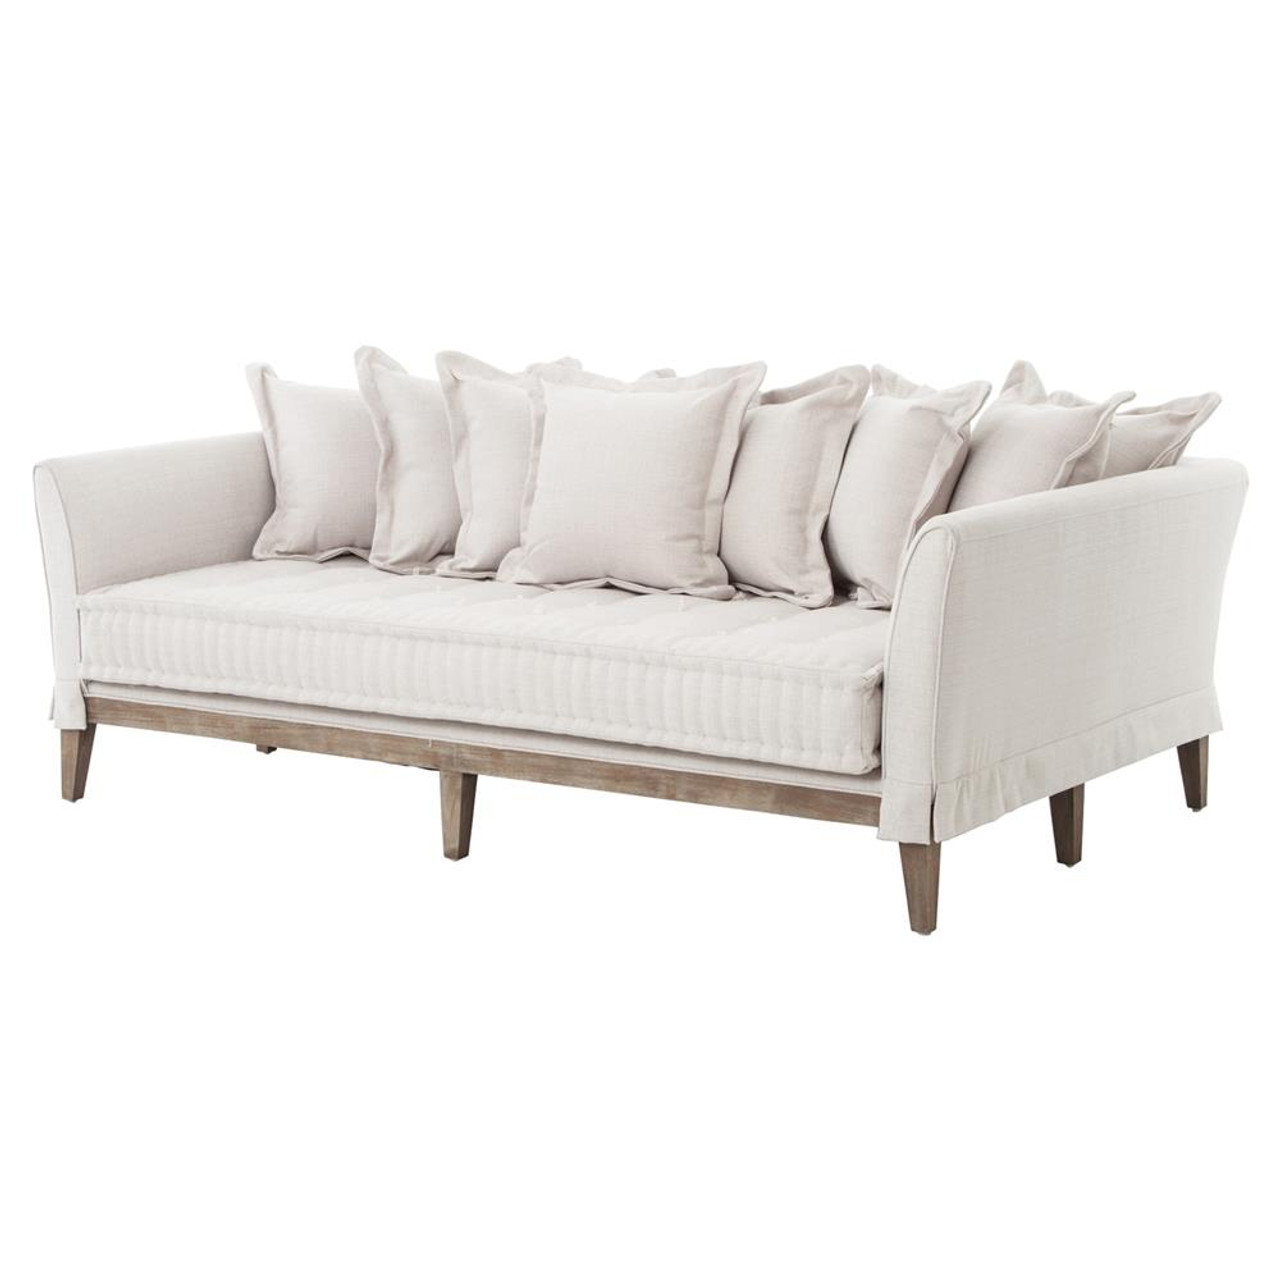 Sofa Bed Couch Theory Upholstered Daybed Couch